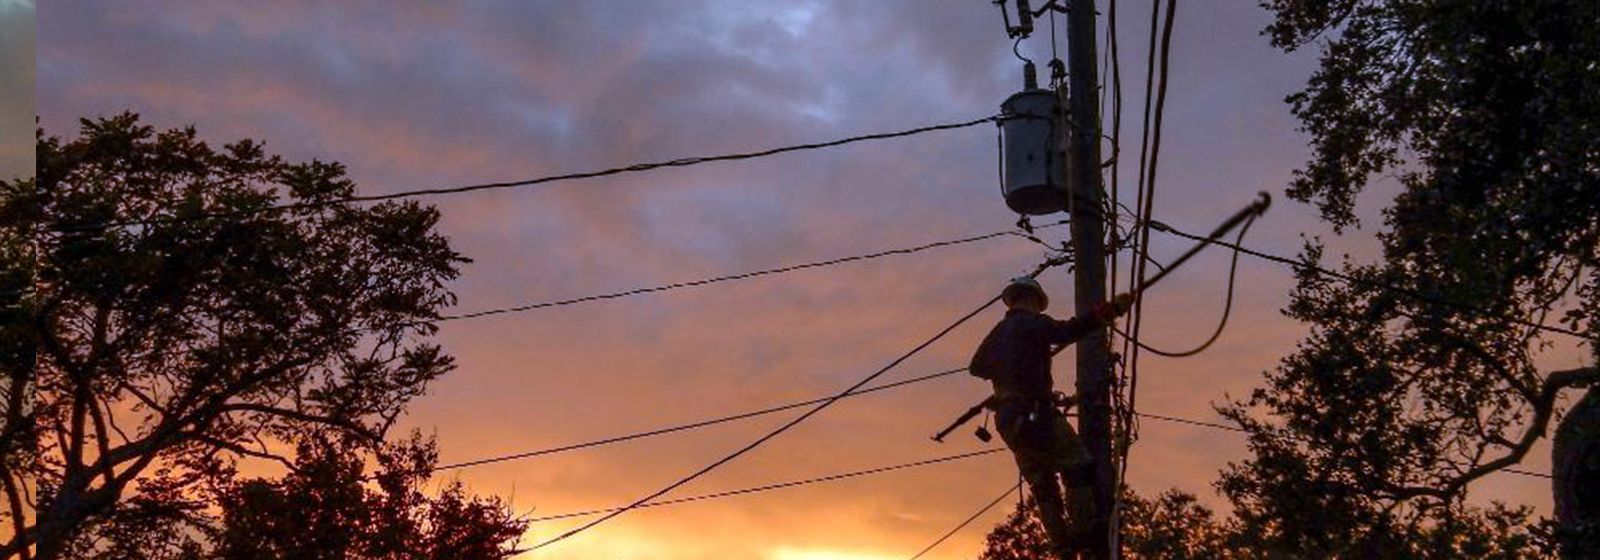 Answers To Your Hurricane Irma Power Restoration Questions | Duke - Duke Energy Transmission Lines Map Florida